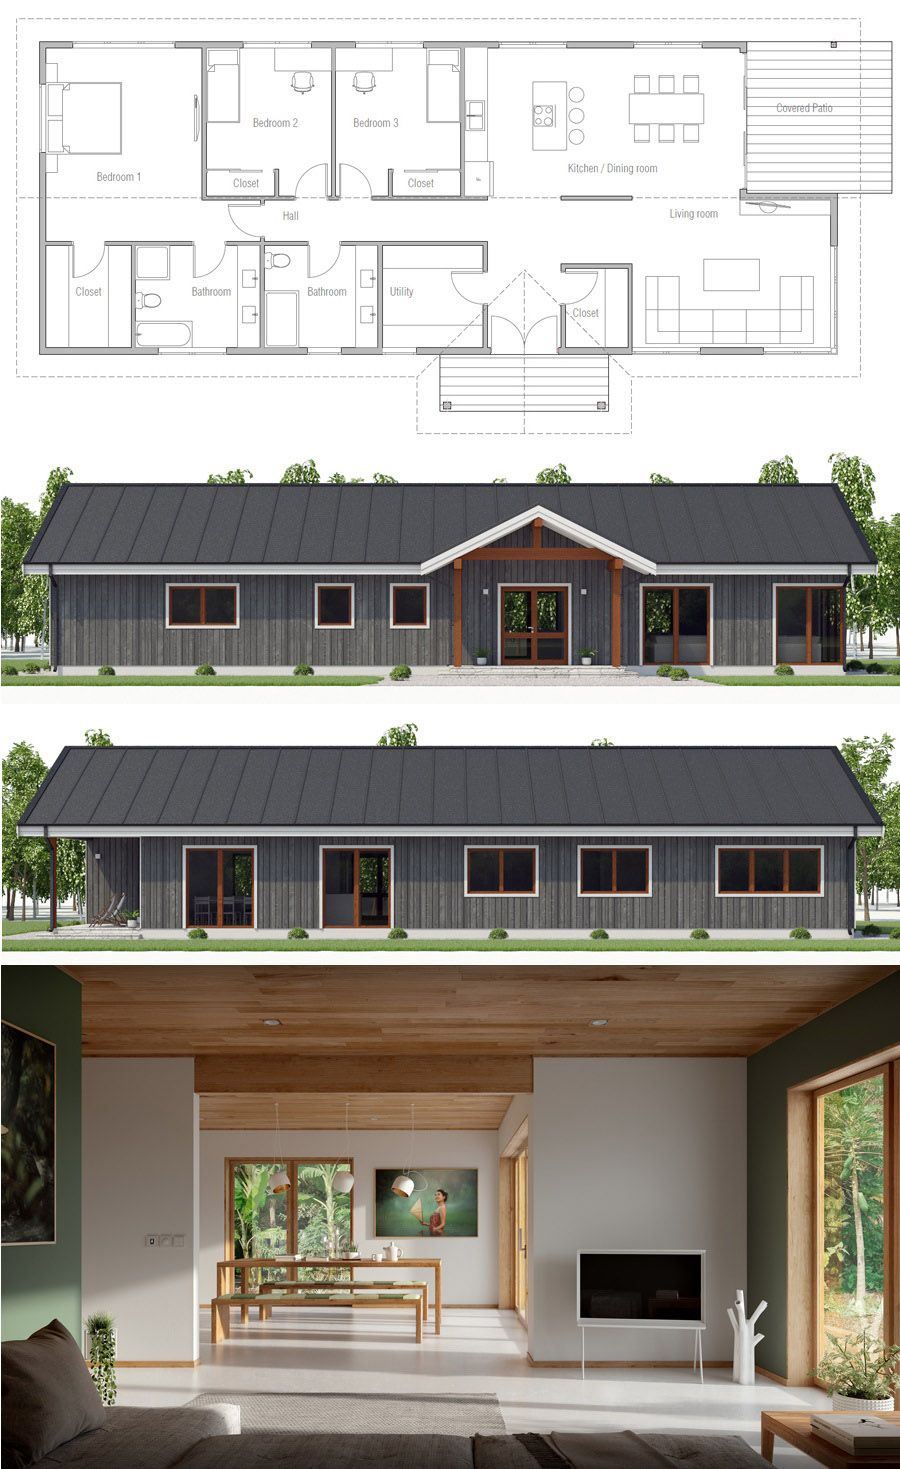 Simple Duplex House Design In Philippines: Floor Plans, Home Plans, House Designs, #floorplans